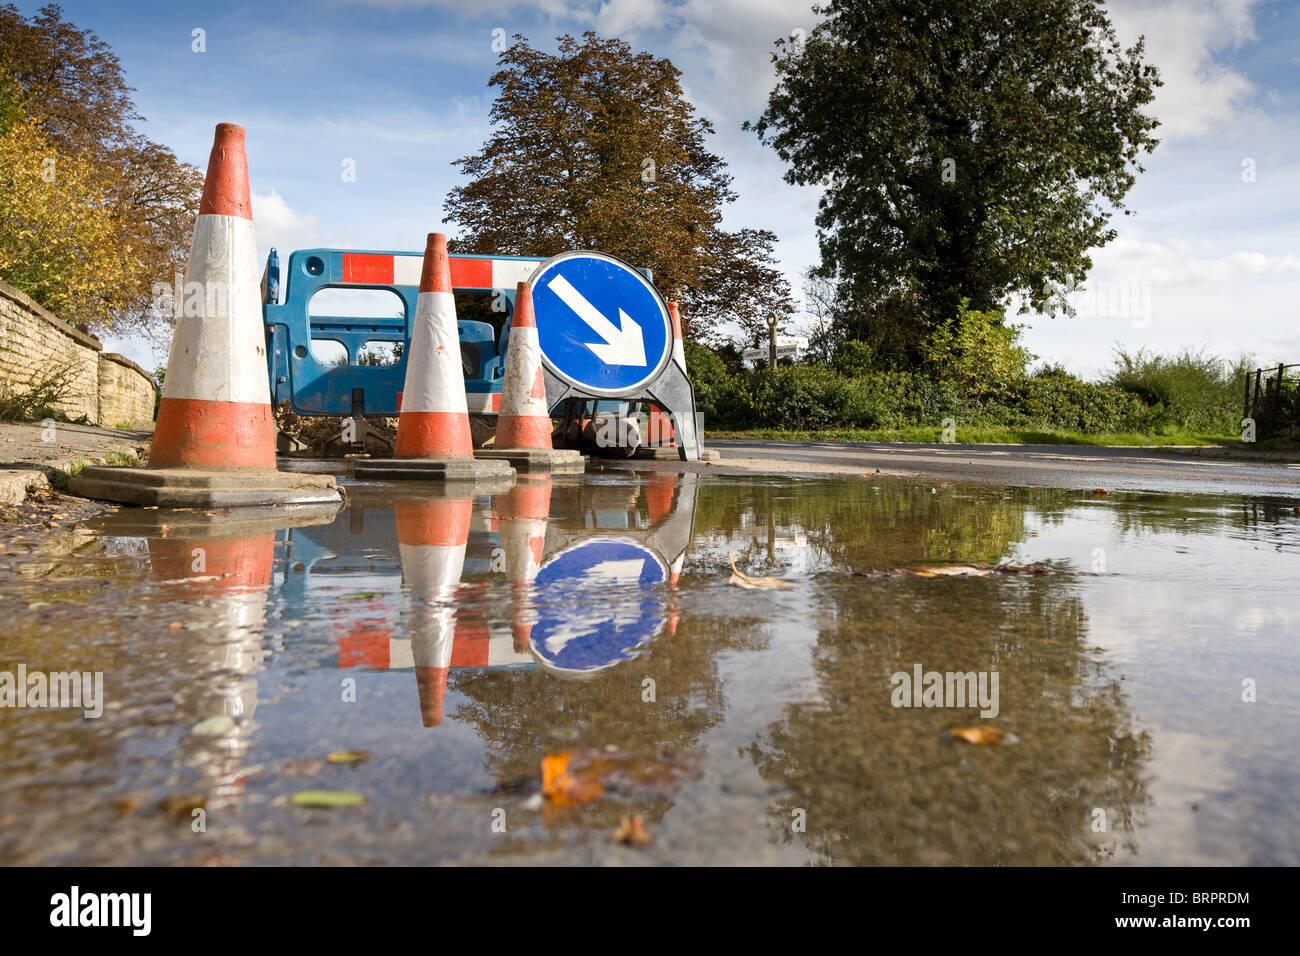 Burst Water Main In A Village Street - Stock Image